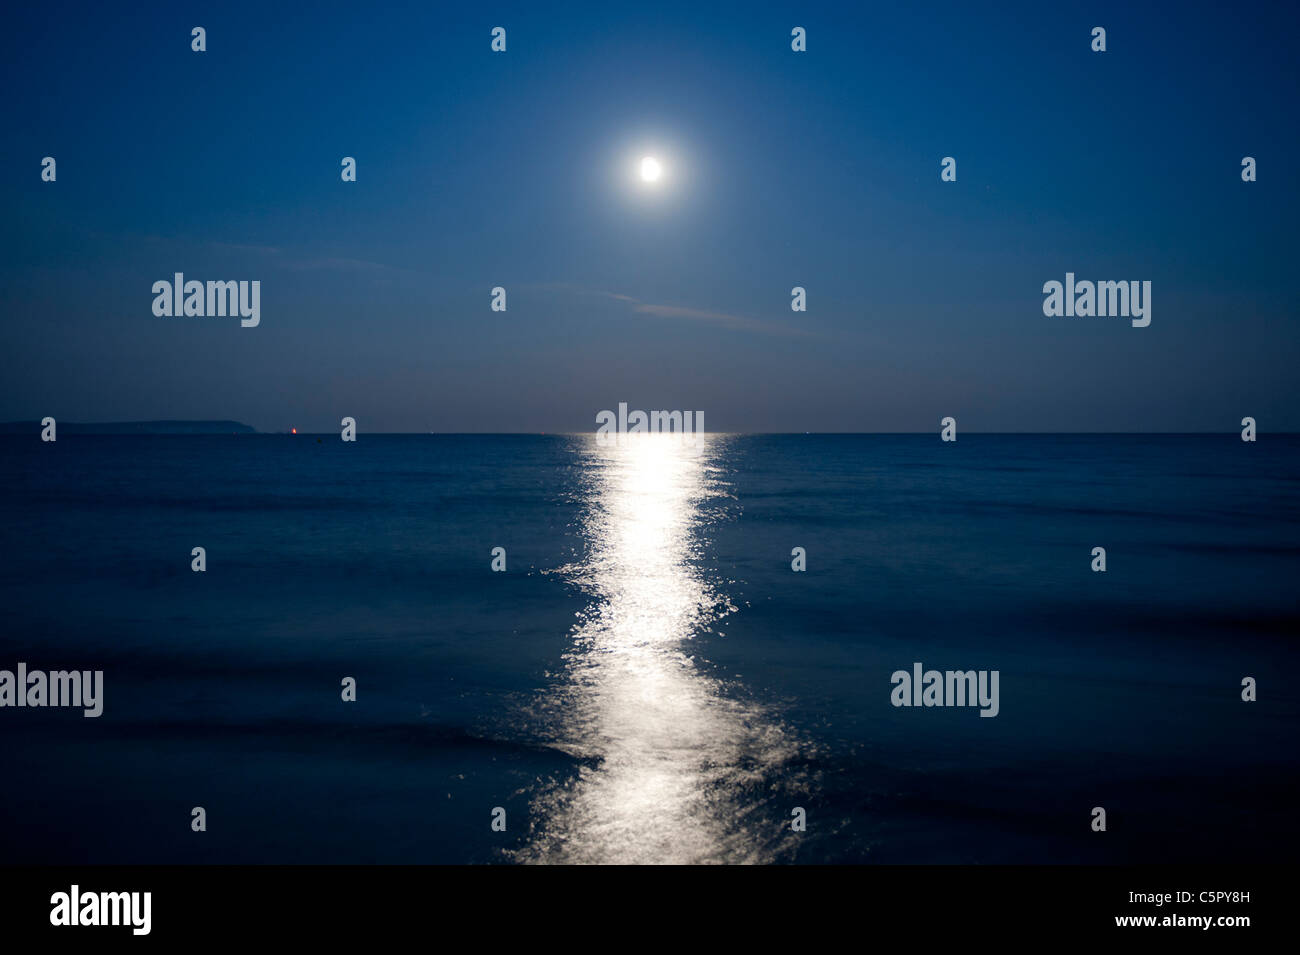 Moonlight sends a reflection over a calm night sea by the coast of Highcliffe, Dorset. - Stock Image